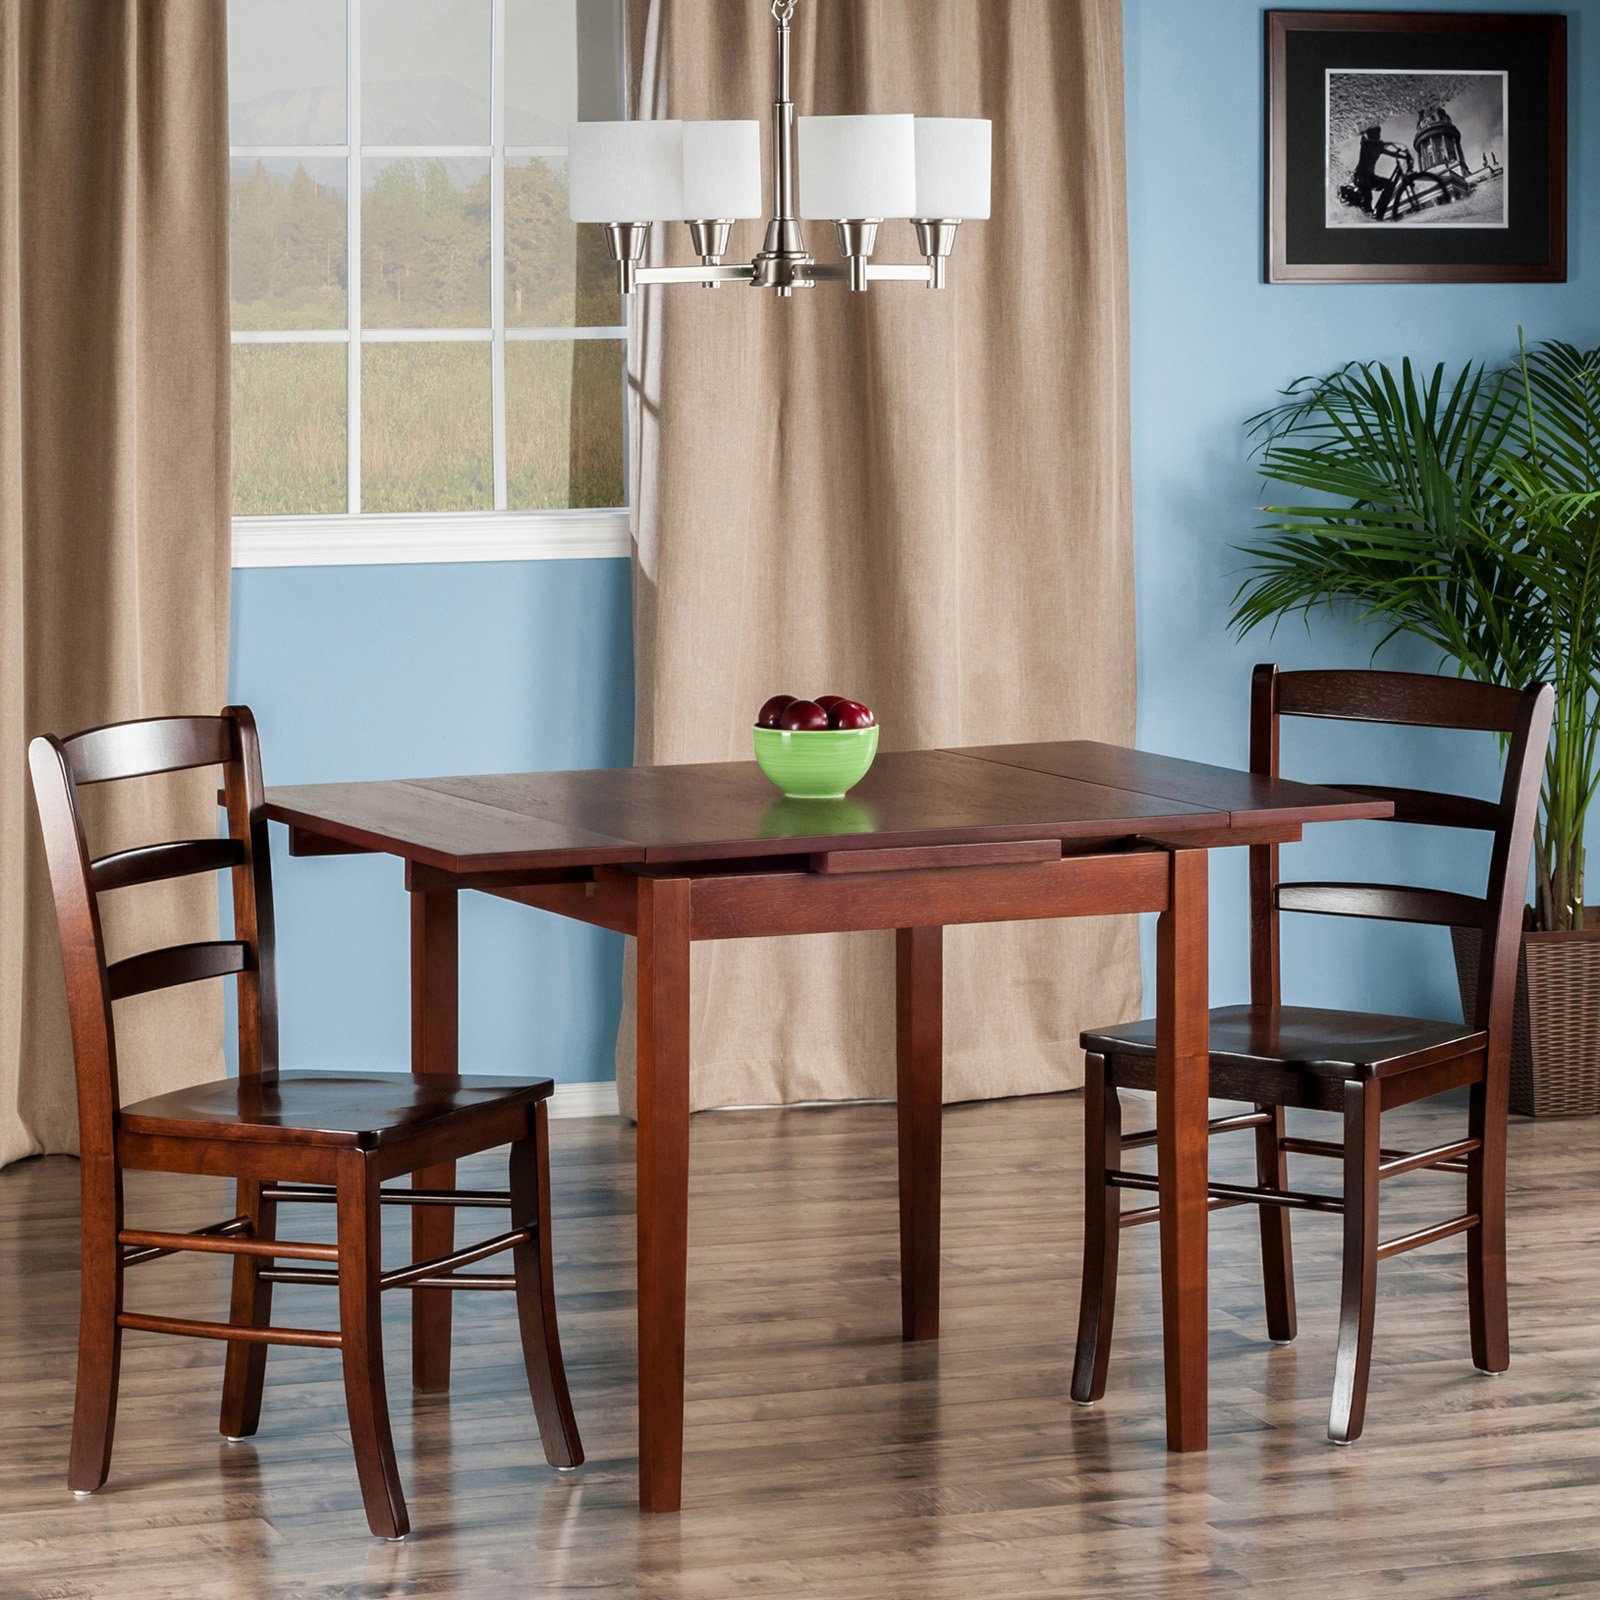 Pulman 3-Pc Set Extension Table 2 Ladder Back Chairs